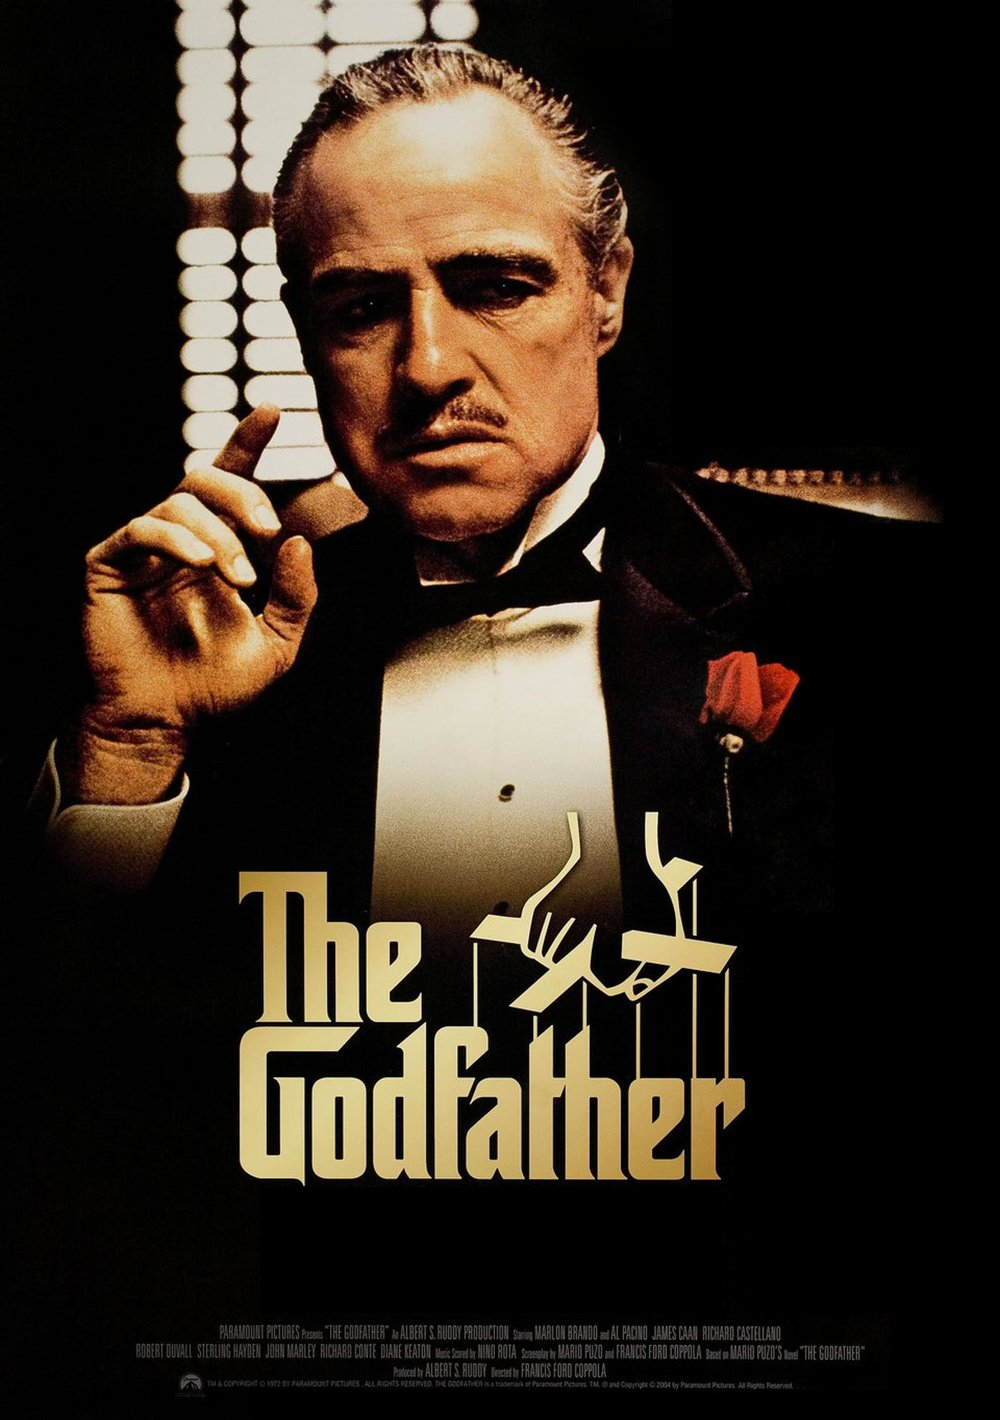 The Godfather (1971) - Best guess: A mobster becomes someone's Godfather and paves the way for The Sopranos (haven't seen that).